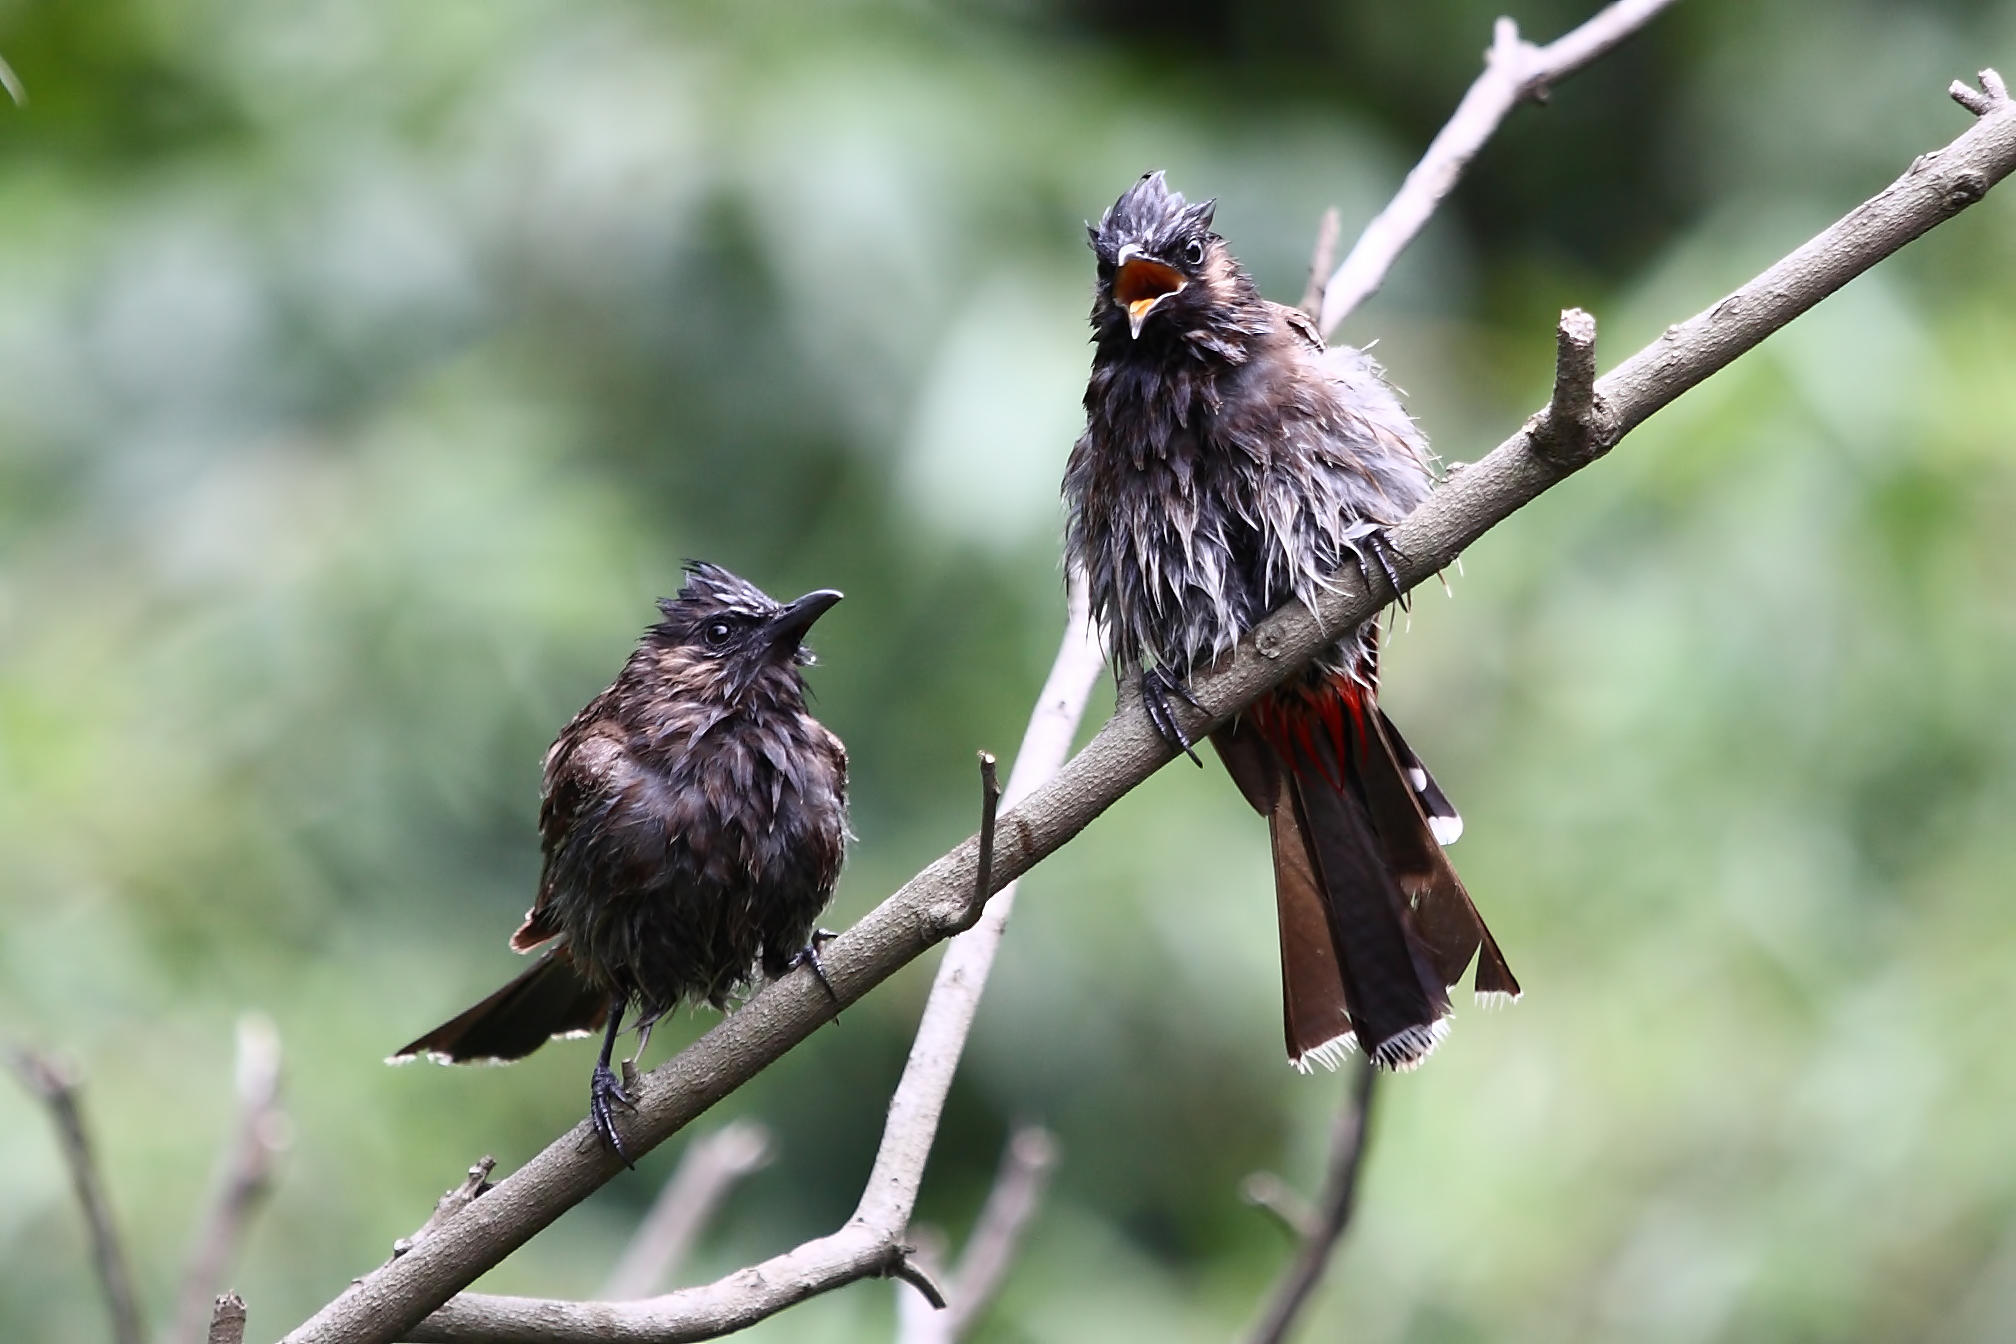 A Pair of Red vented Bulbul